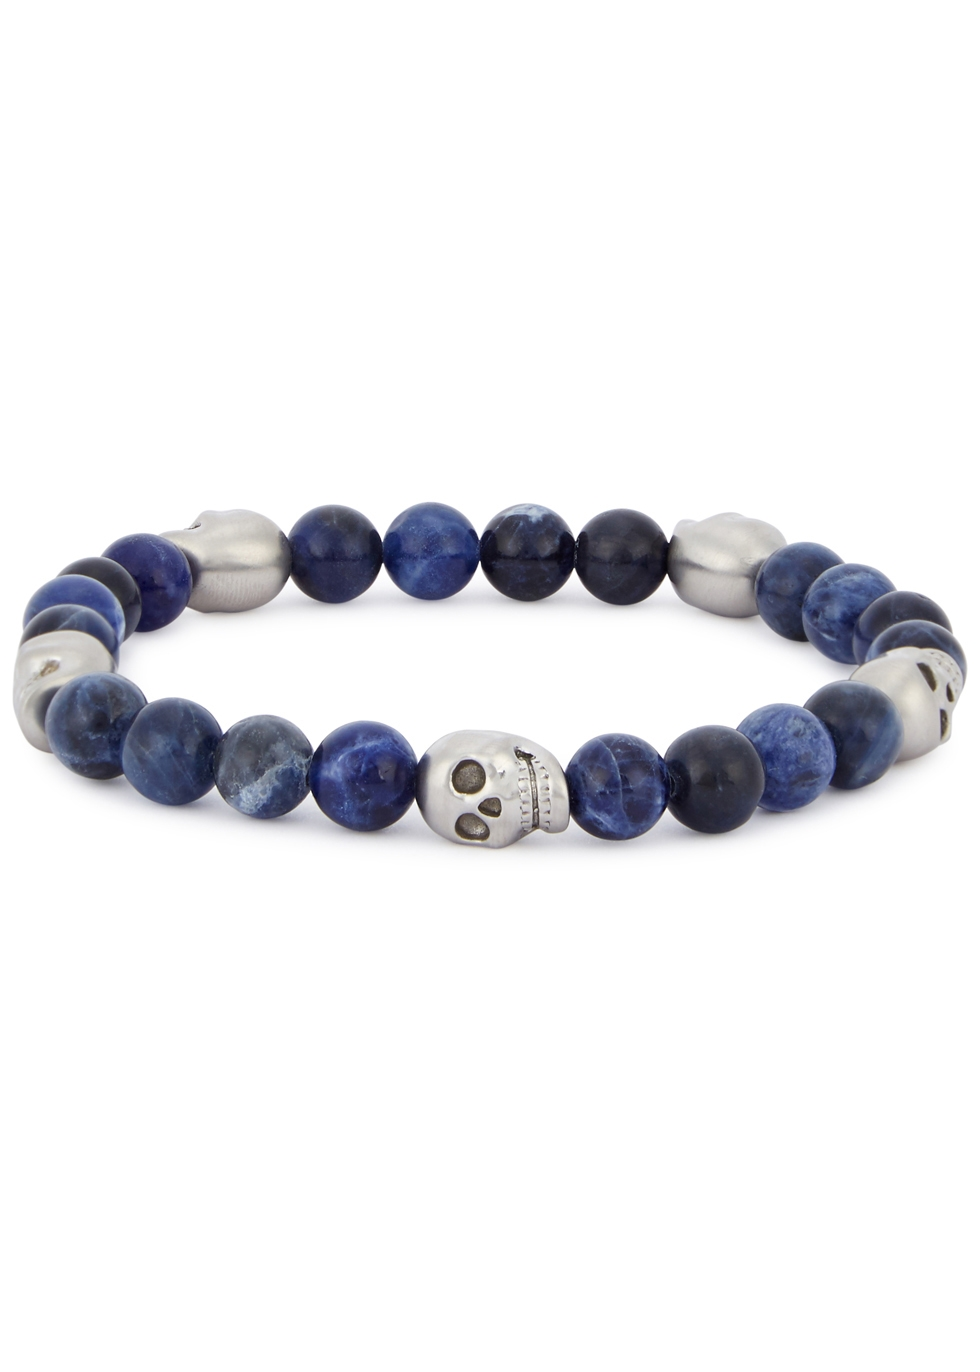 SIMON CARTER SODALITE BEADED SKULL BRACELET